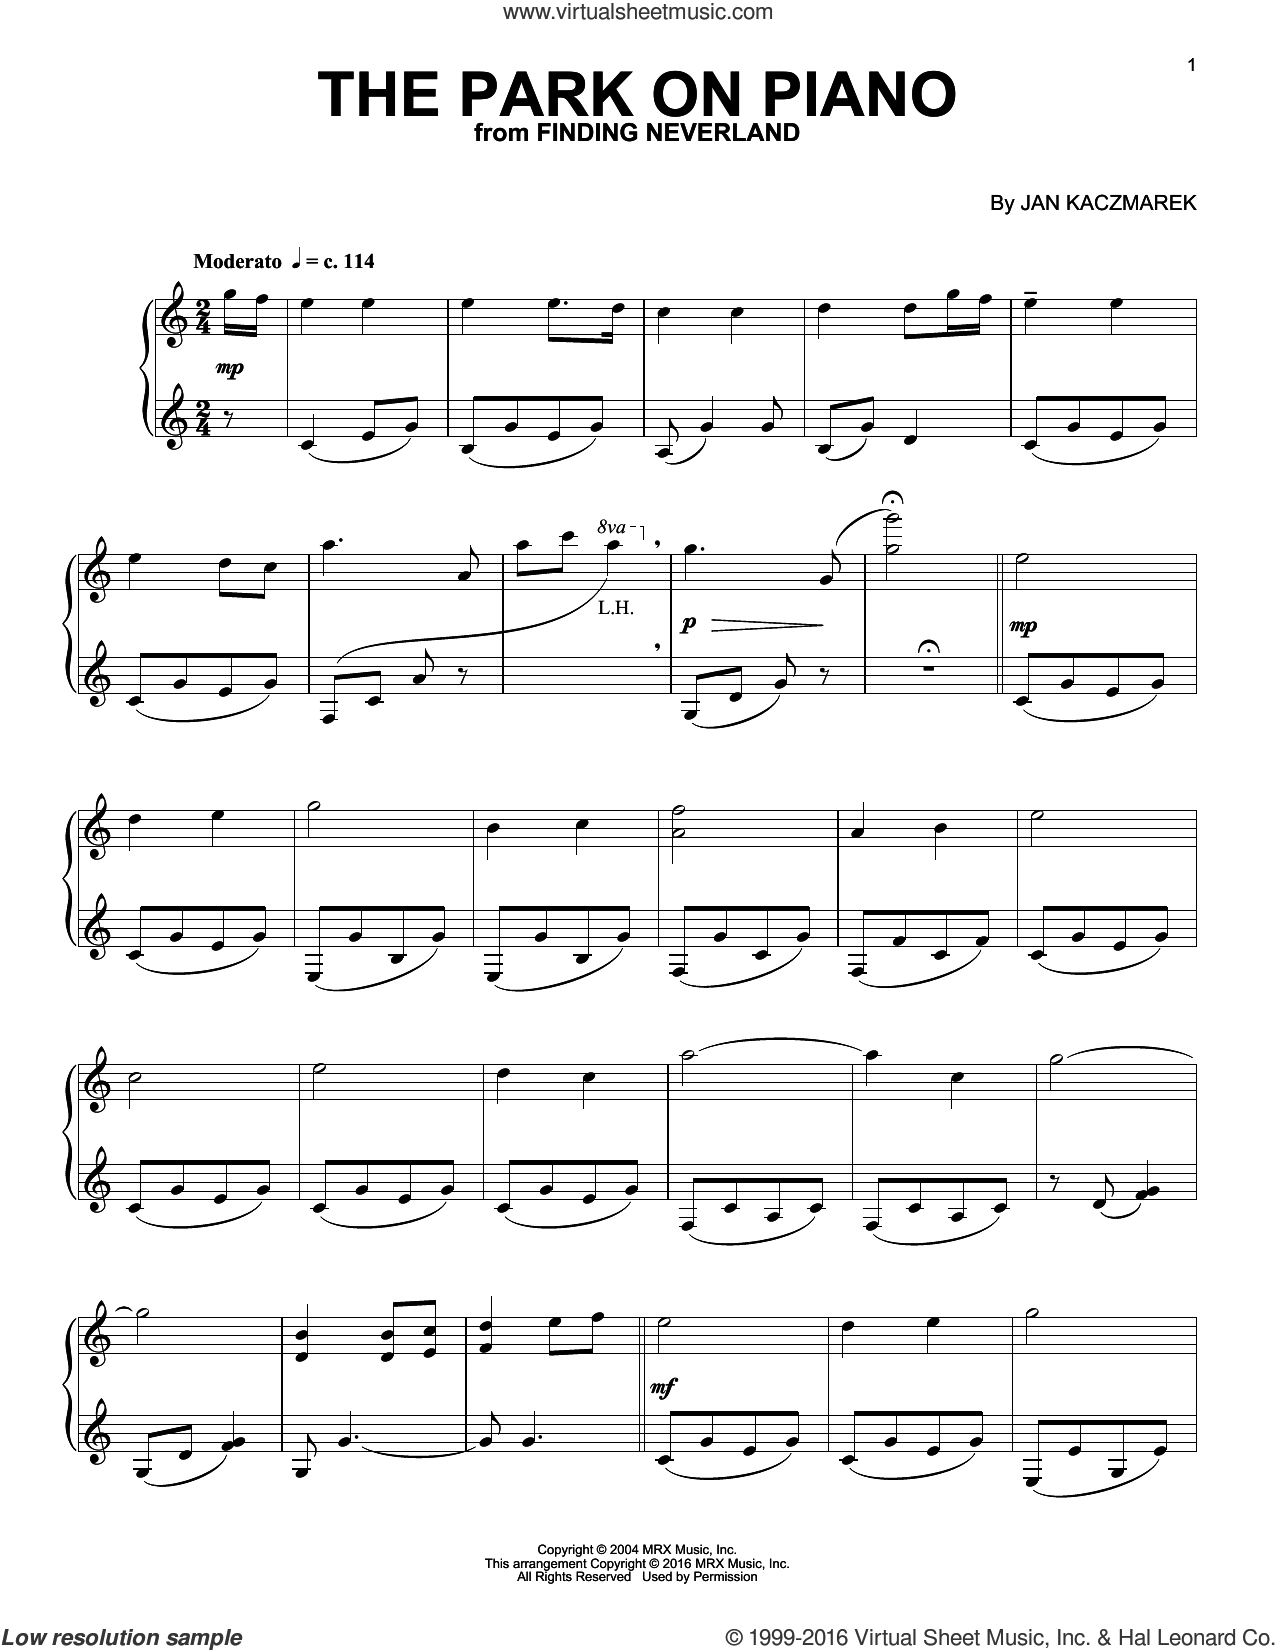 The Park On Piano sheet music for piano solo by Jan A.P. Kaczmarek, intermediate skill level